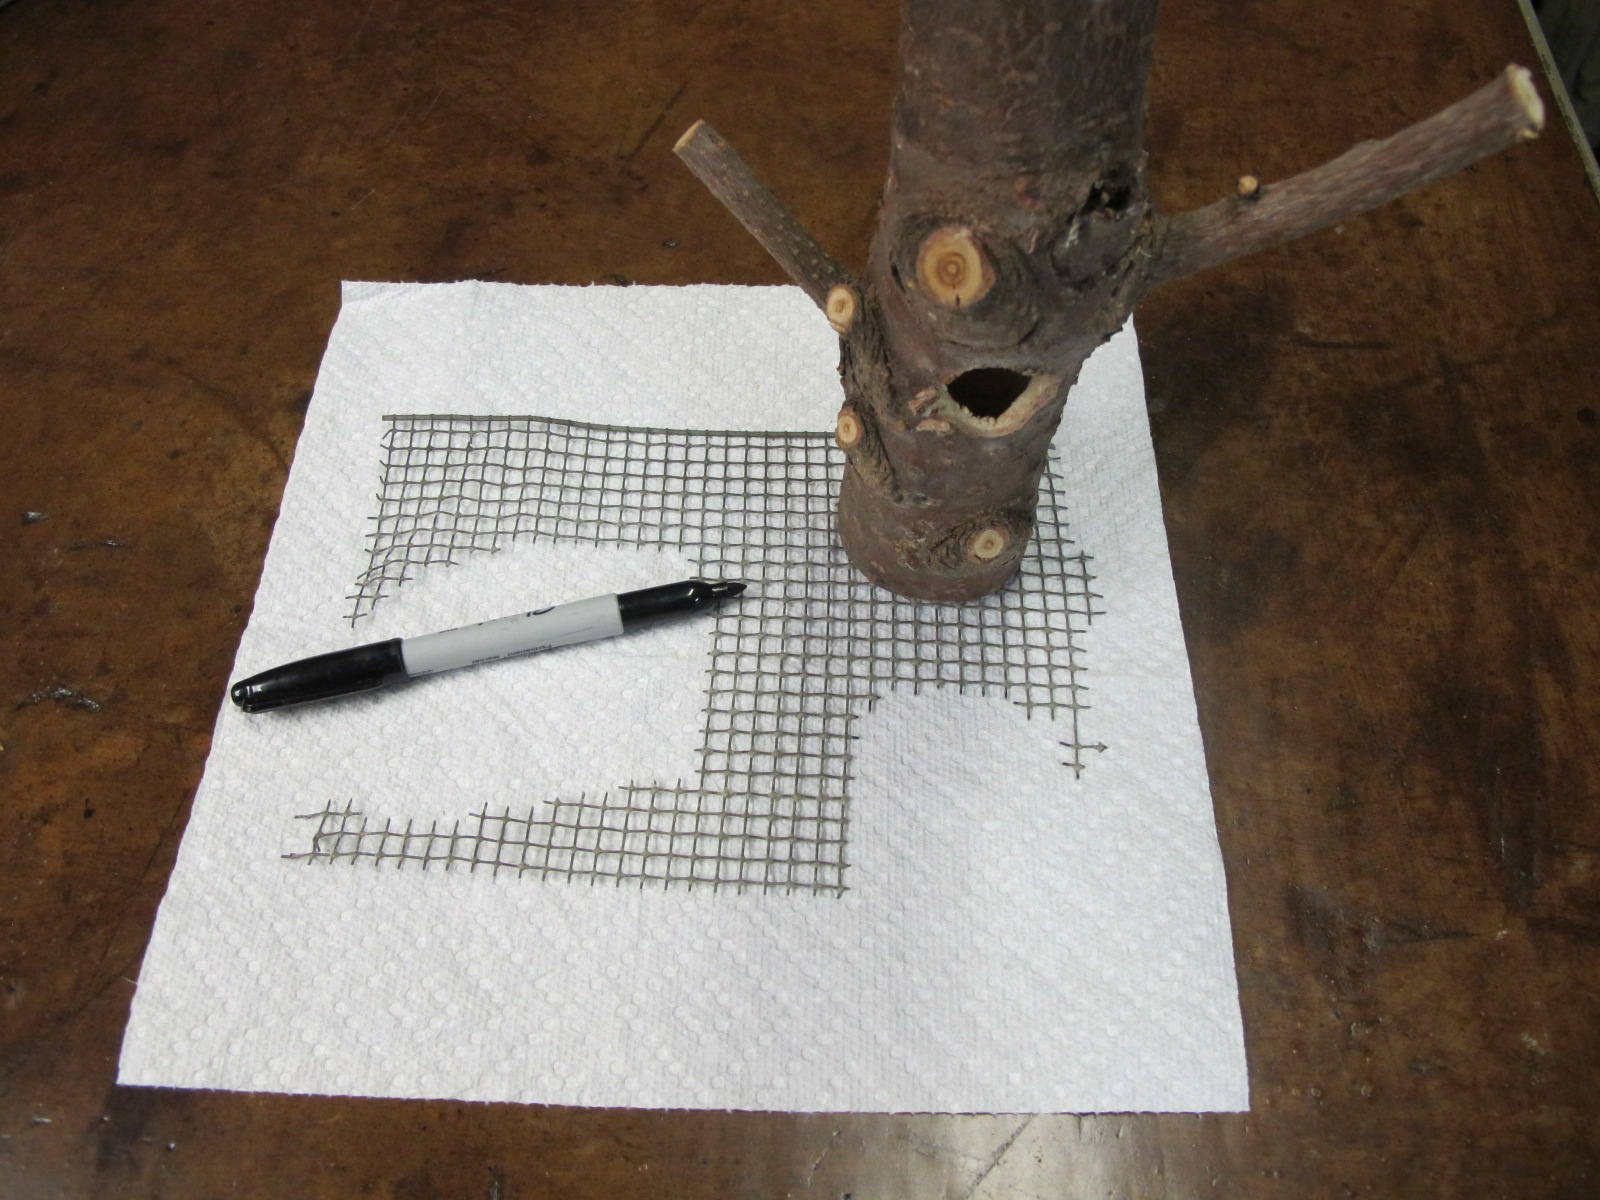 Sketch round pattern onto wire mesh with Sharpie pen using bottom of feeder .